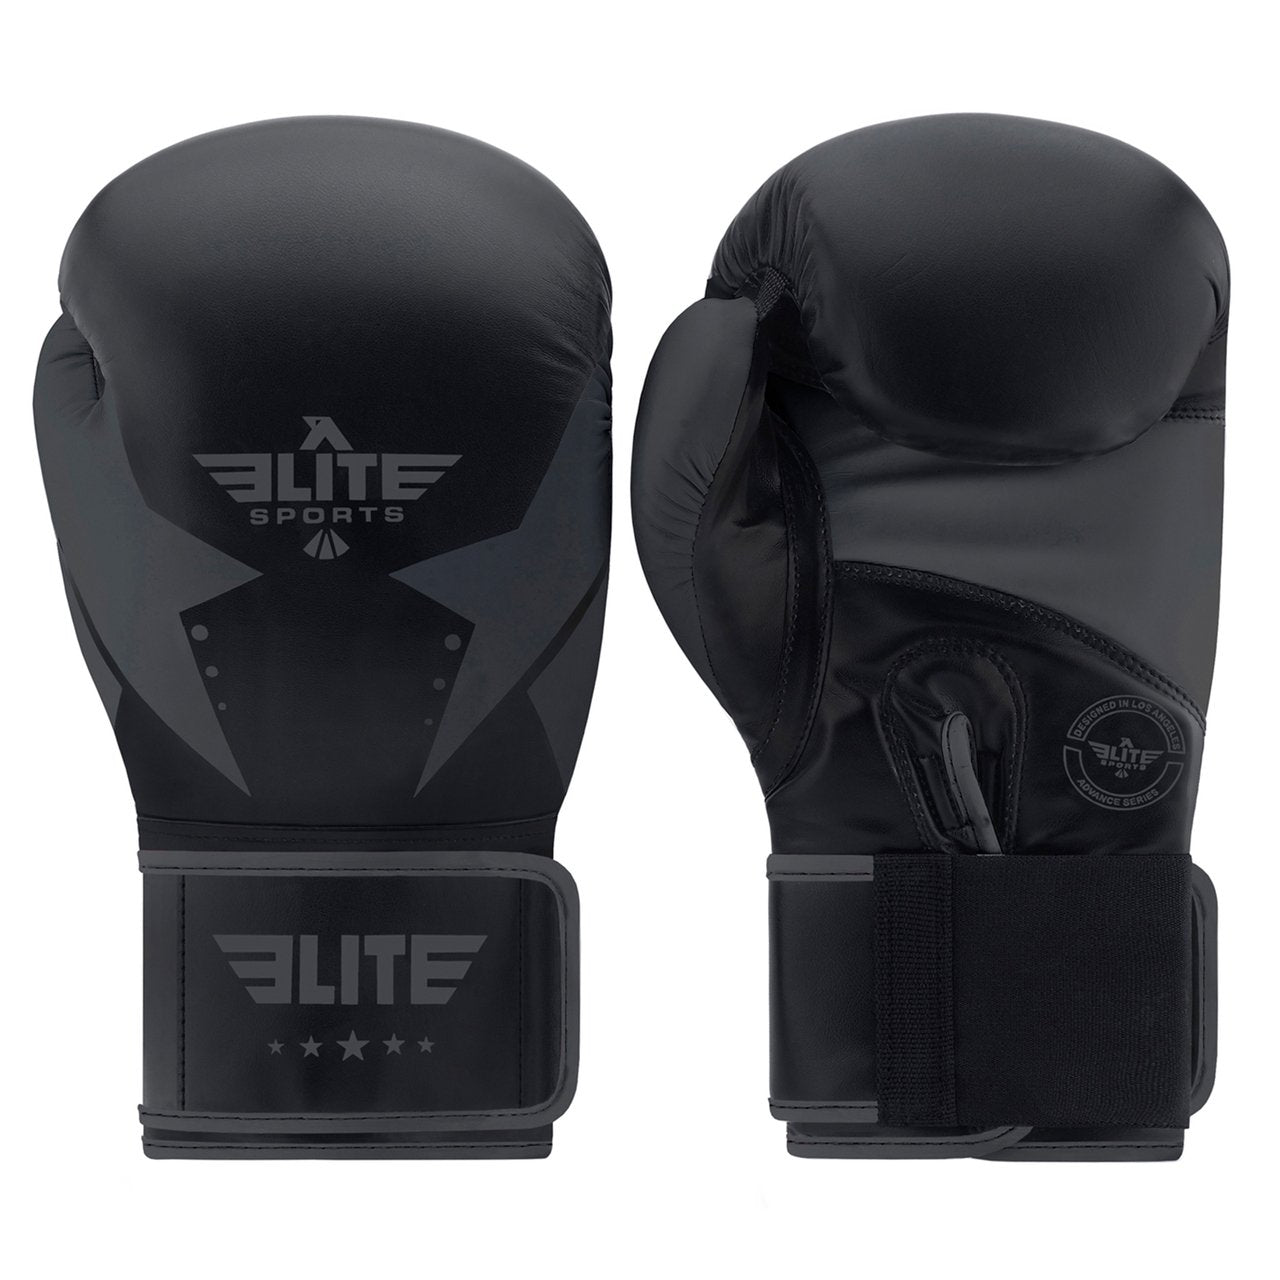 Load image into Gallery viewer, Elite Sports Star Series Black/Black Adult Boxing Gloves